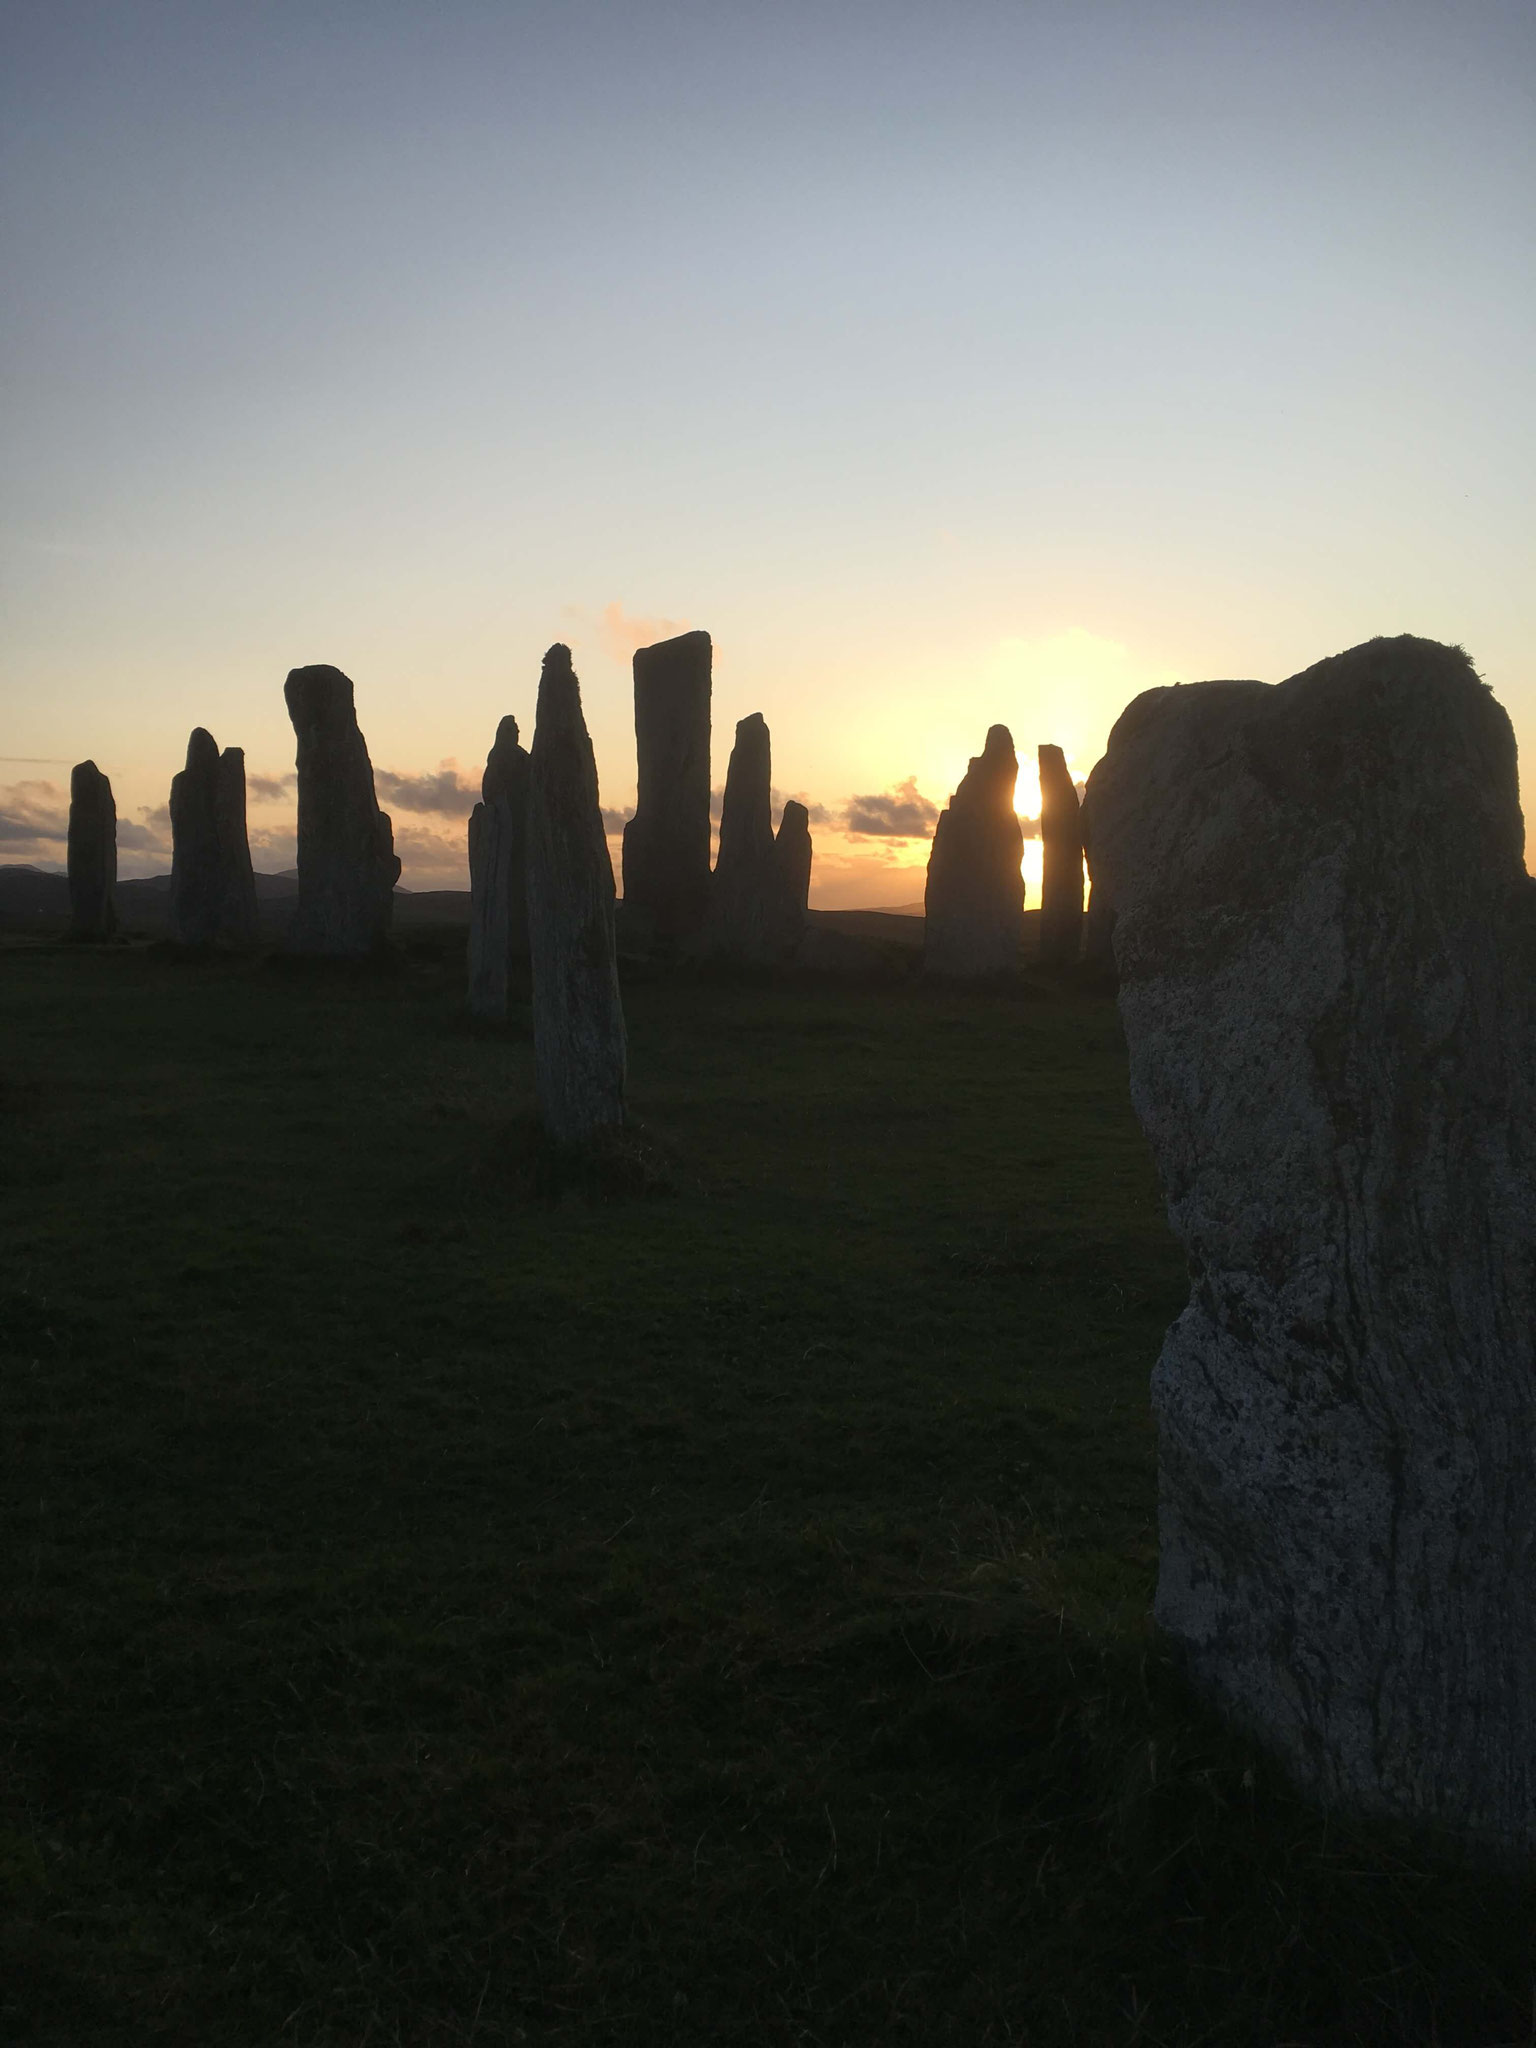 Sunset at the Standing Stones of Callanish